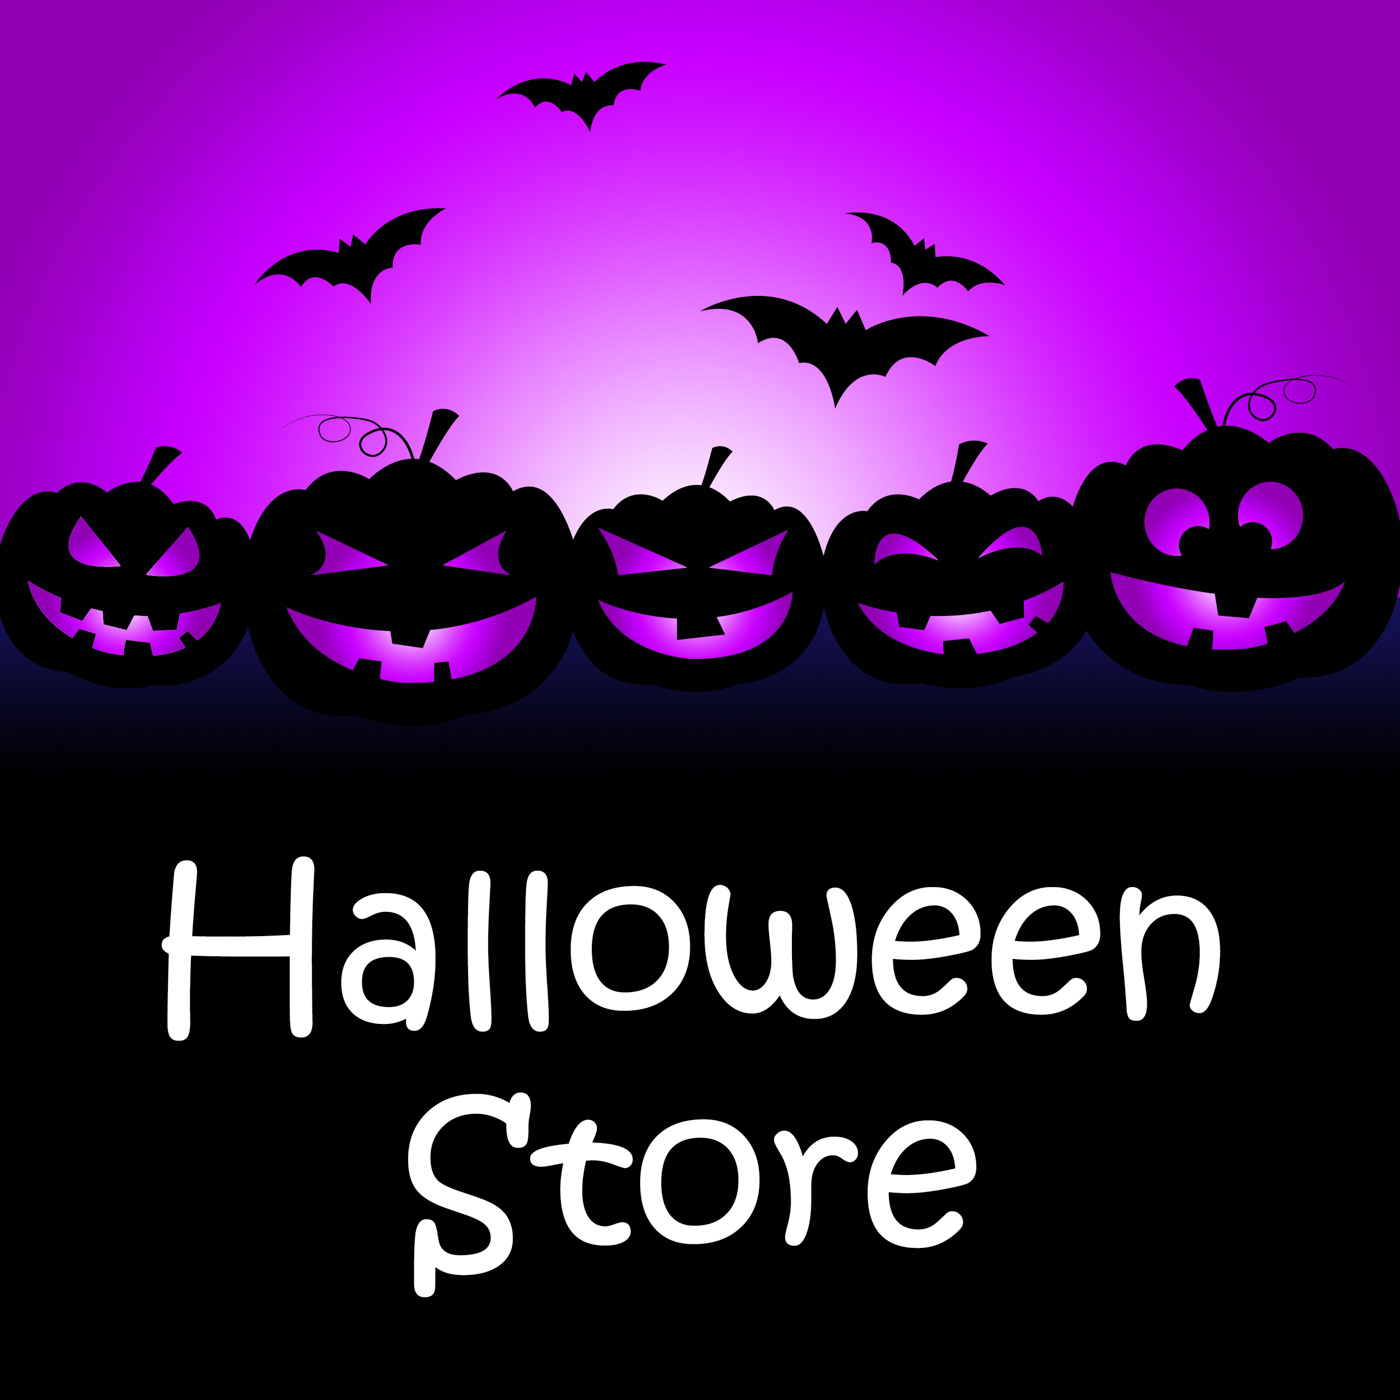 Halloween store shows buy it and celebration photo